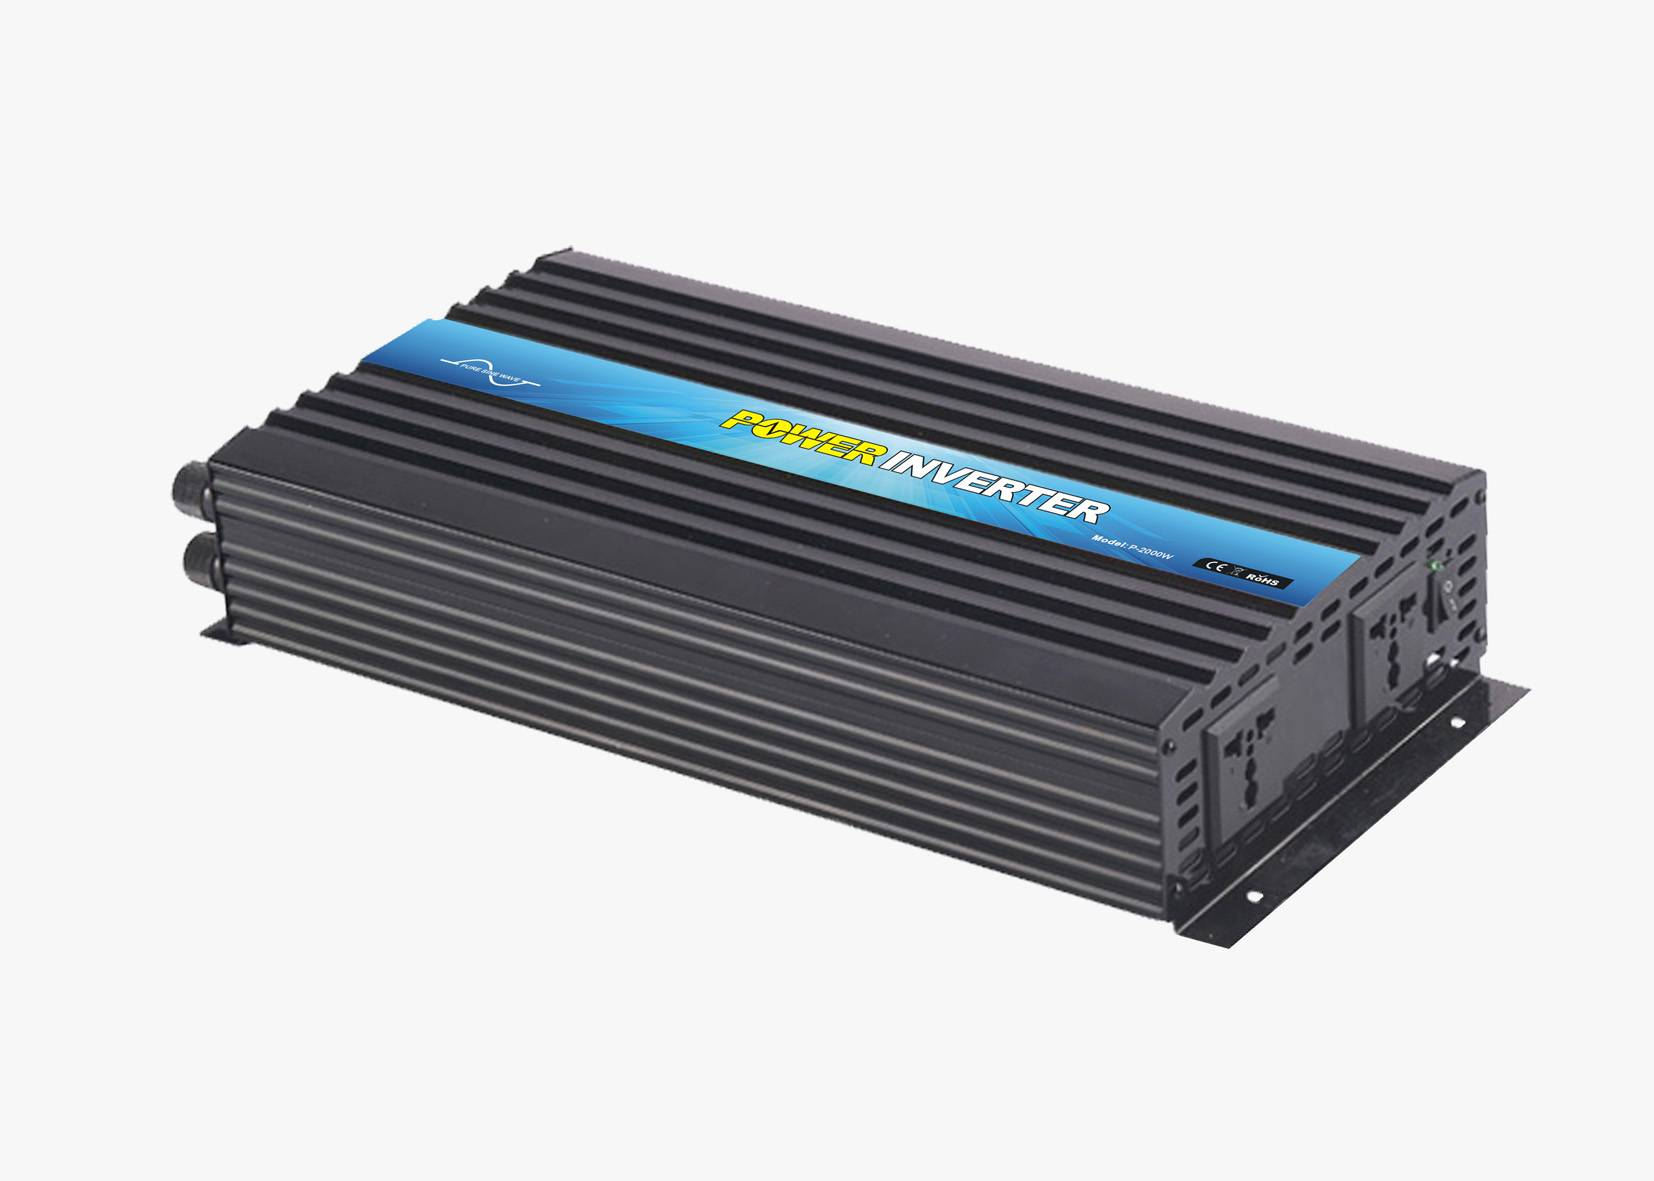 2000W Pure Sine Wave Inverter for Home